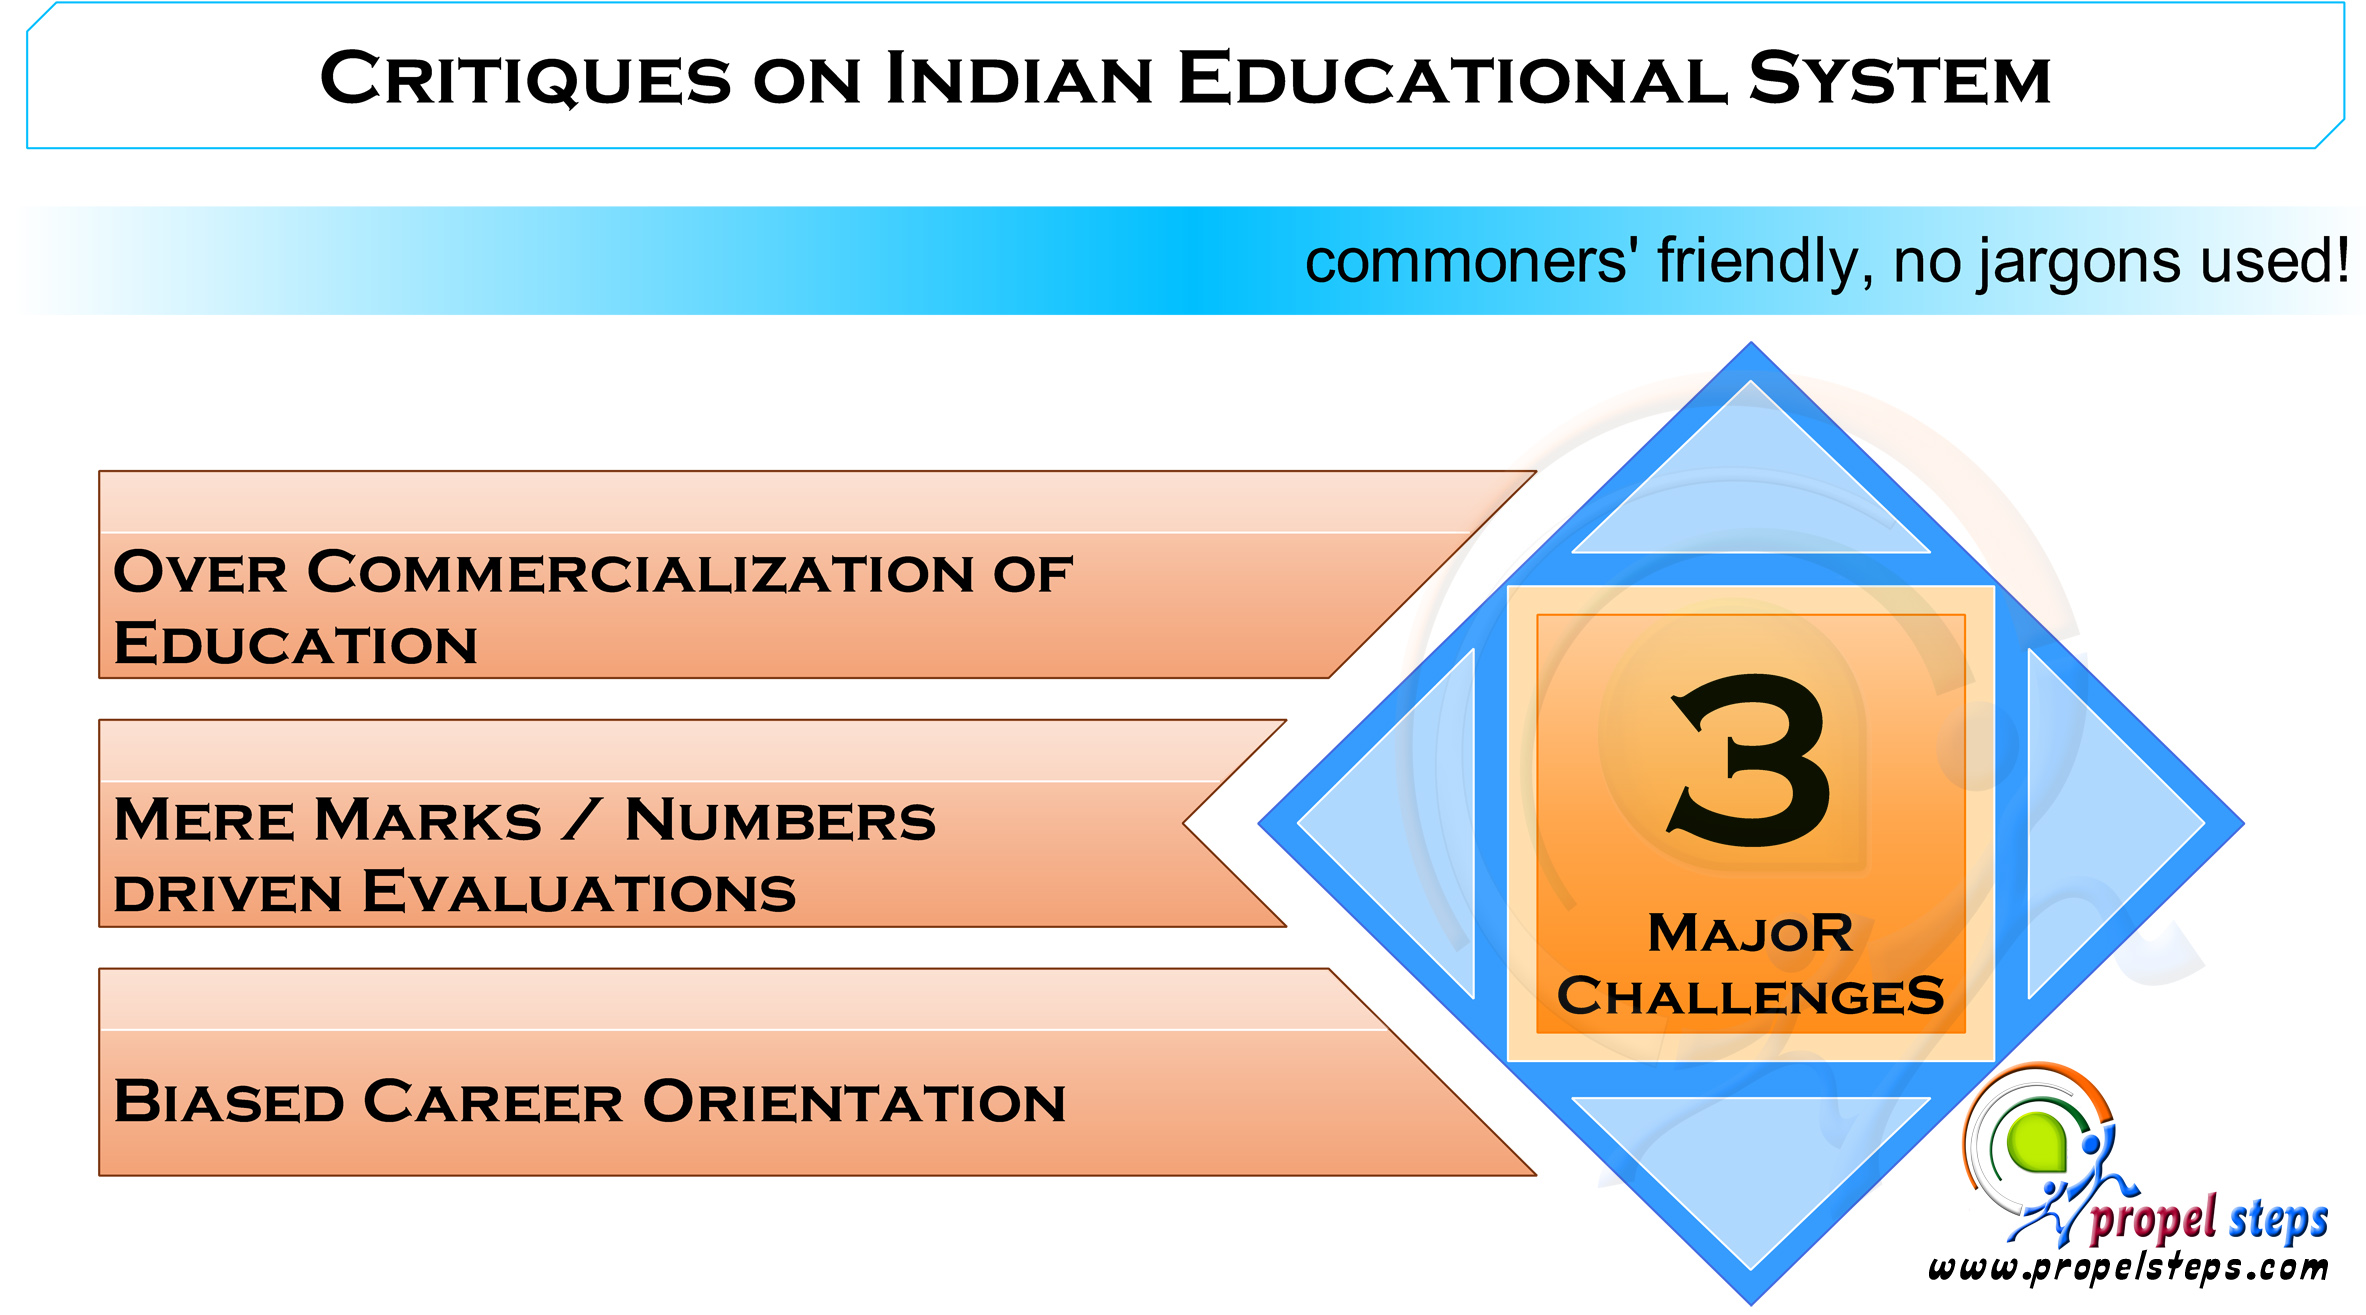 016 Essay On Quality Education In India Example Critiques Breathtaking Of Higher Full